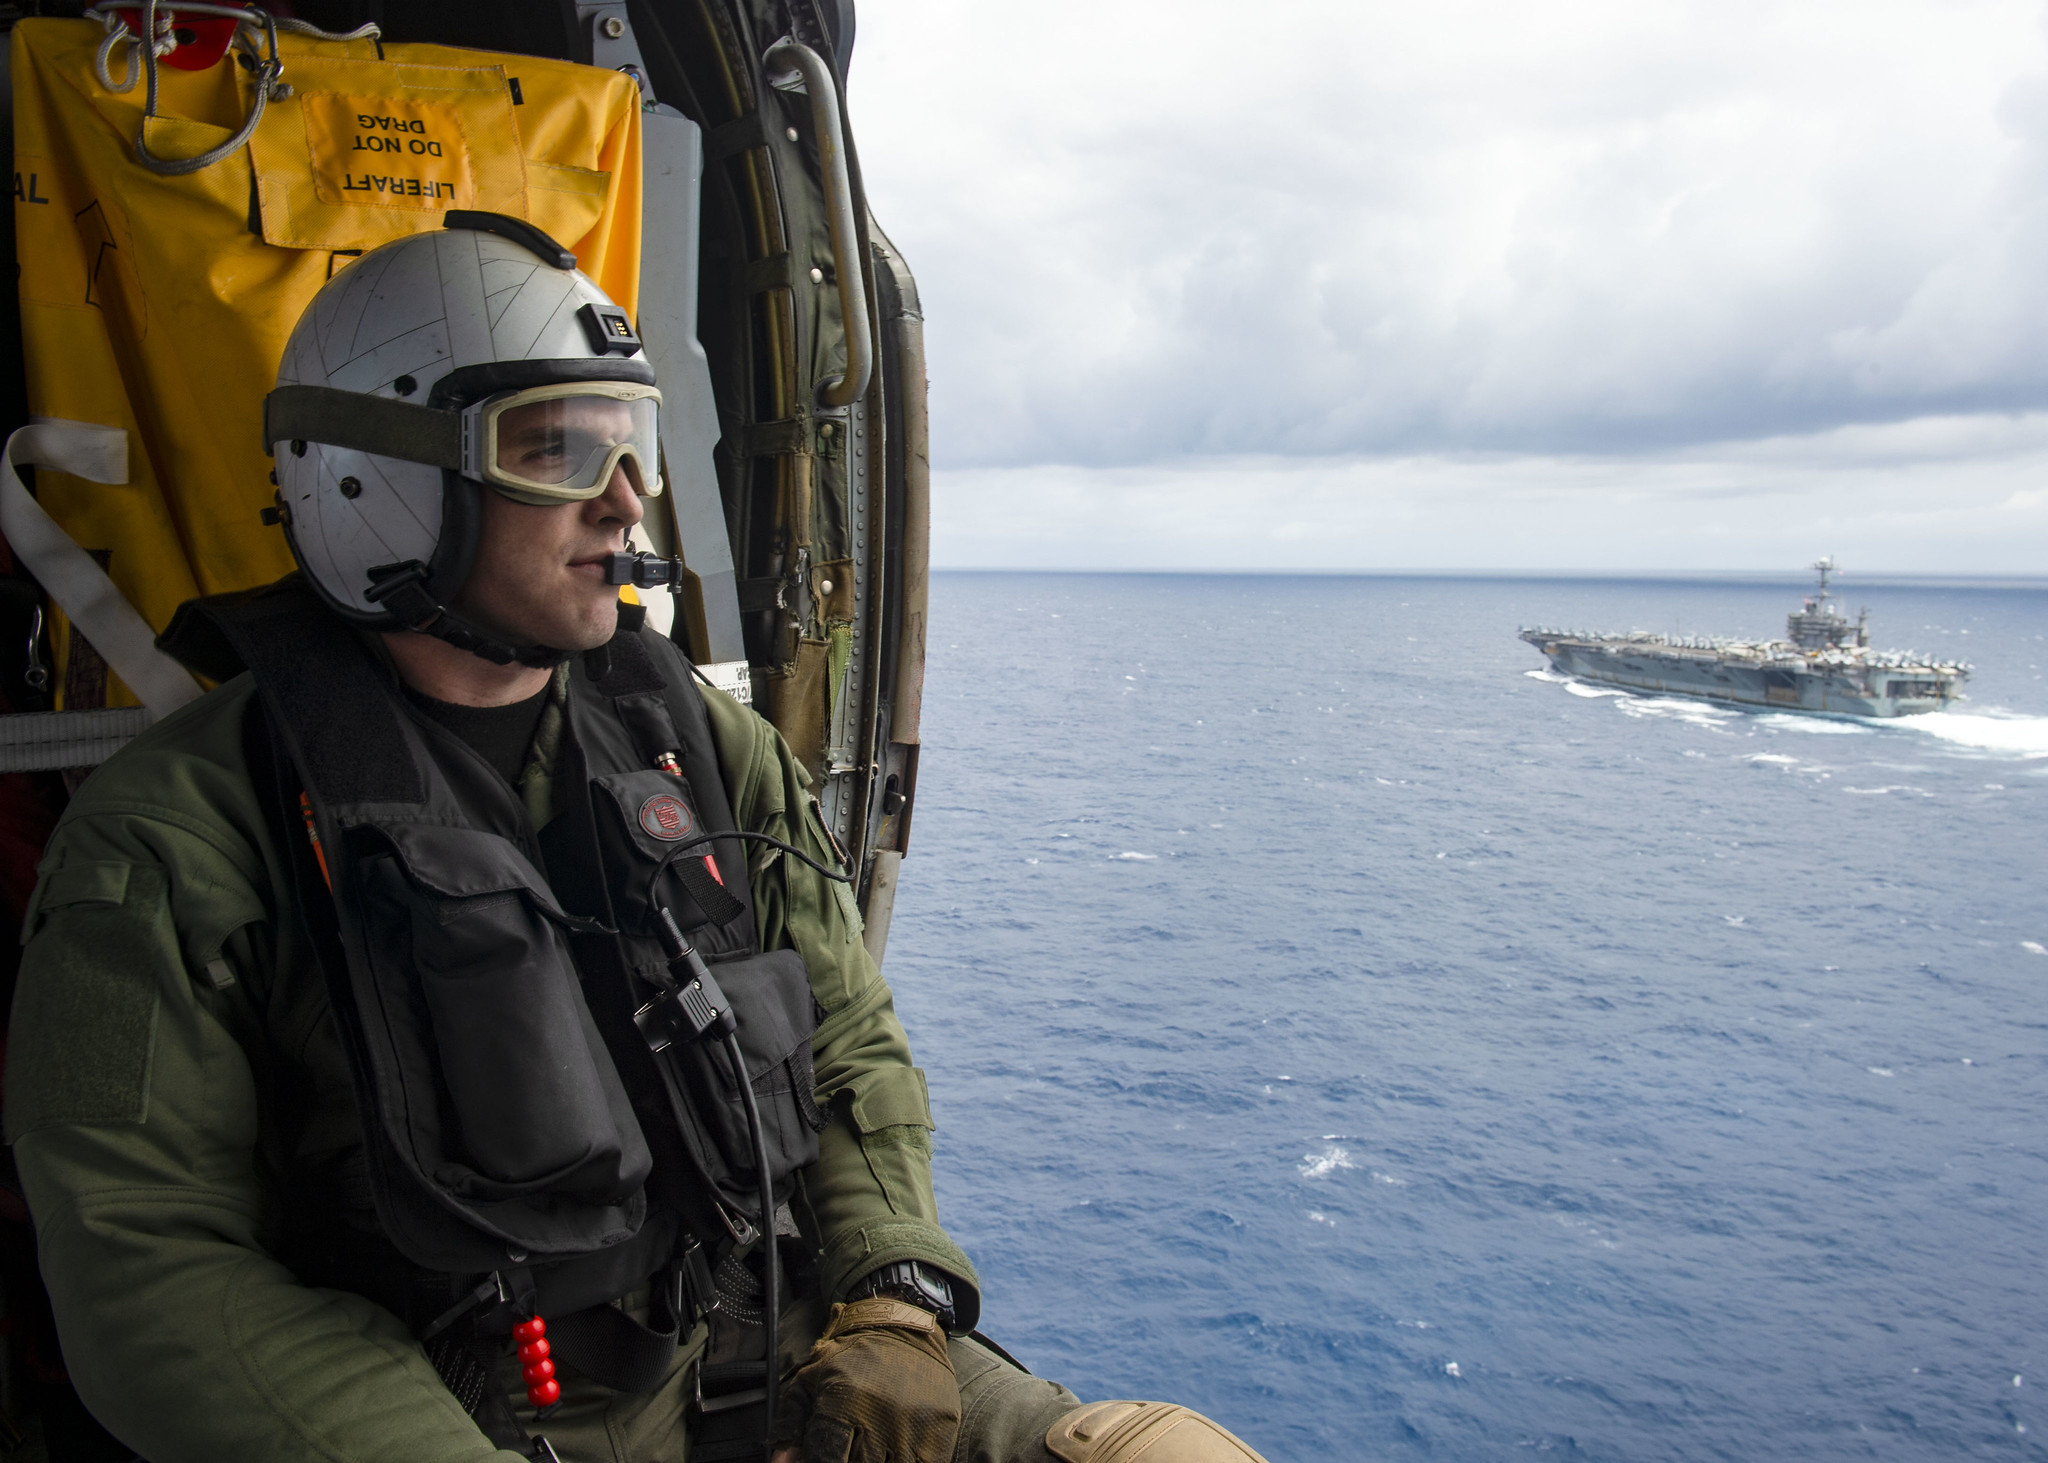 Naval Air Crewman (Helicopter) 3rd Class Jake Shelton observes the Nimitz-class aircraft carrier USS Harry S. Truman (CVN 75) in the Atlantic Ocean on May 27, 2020. (Mass Communication Specialist Seaman Isaac Esposito/Navy)